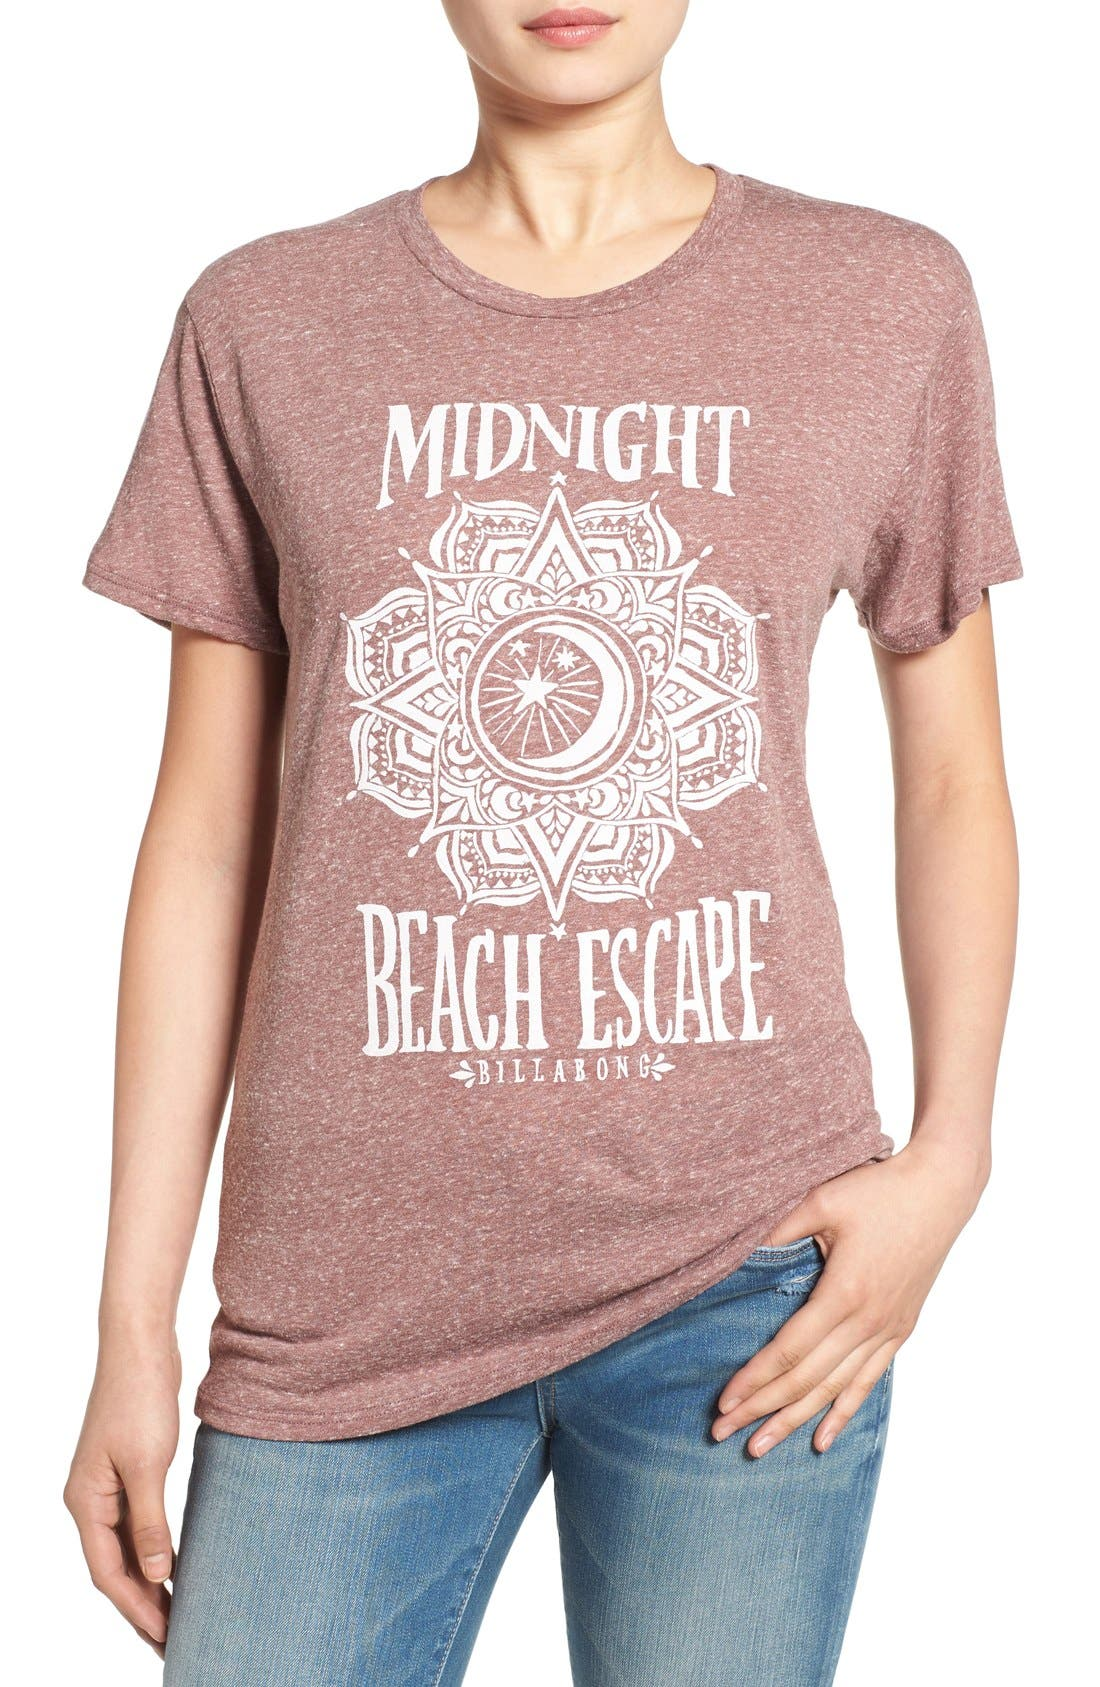 Alternate Image 1 Selected - Billabong 'Midnight Escape' Graphic Tee